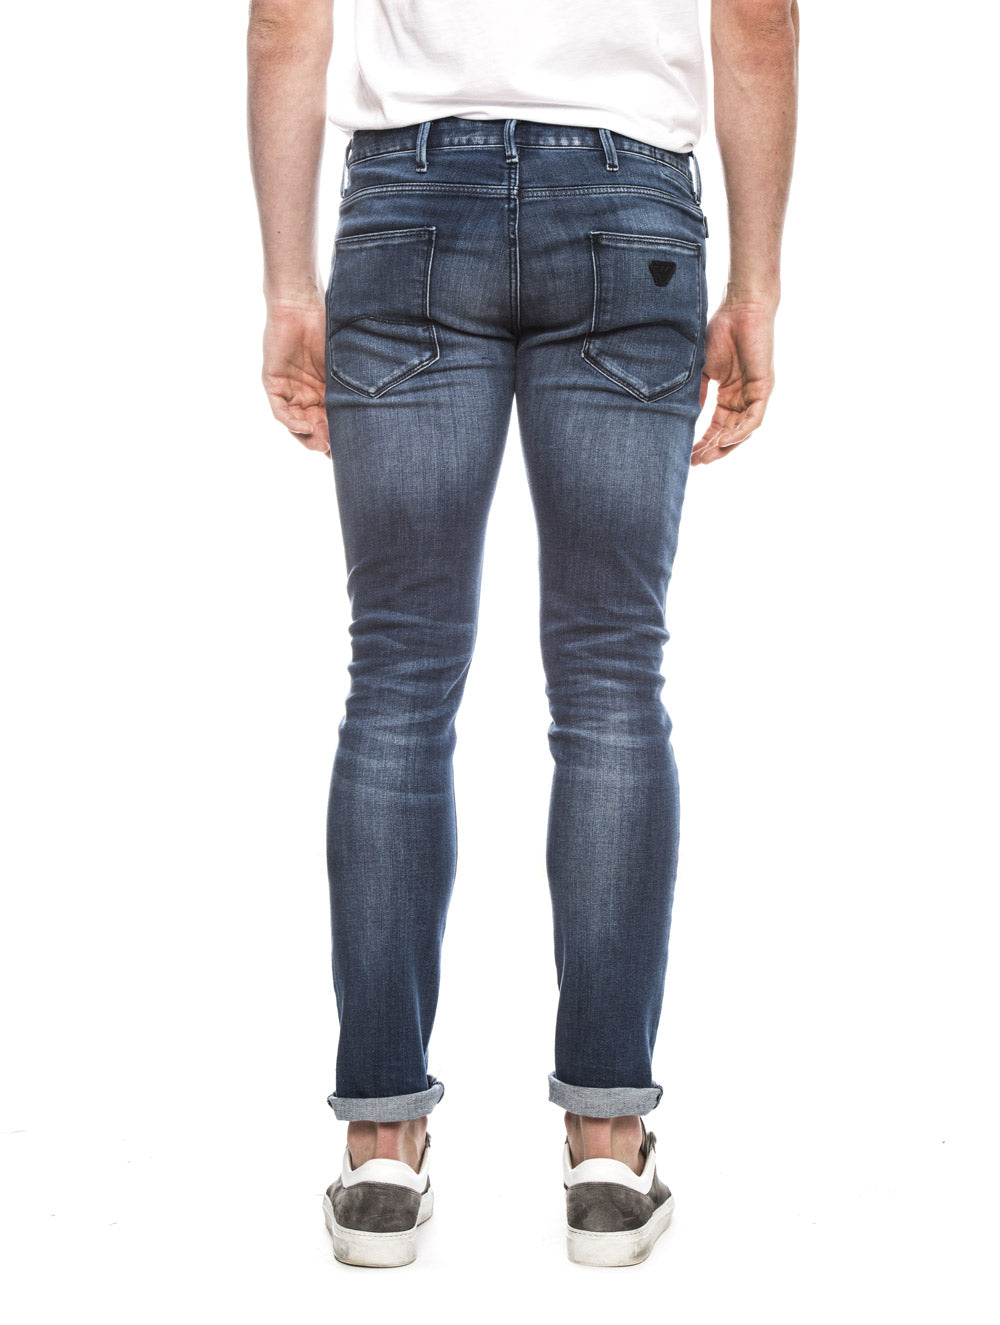 MAN 5 POCKET JEANS IN DENIM BLUE MD